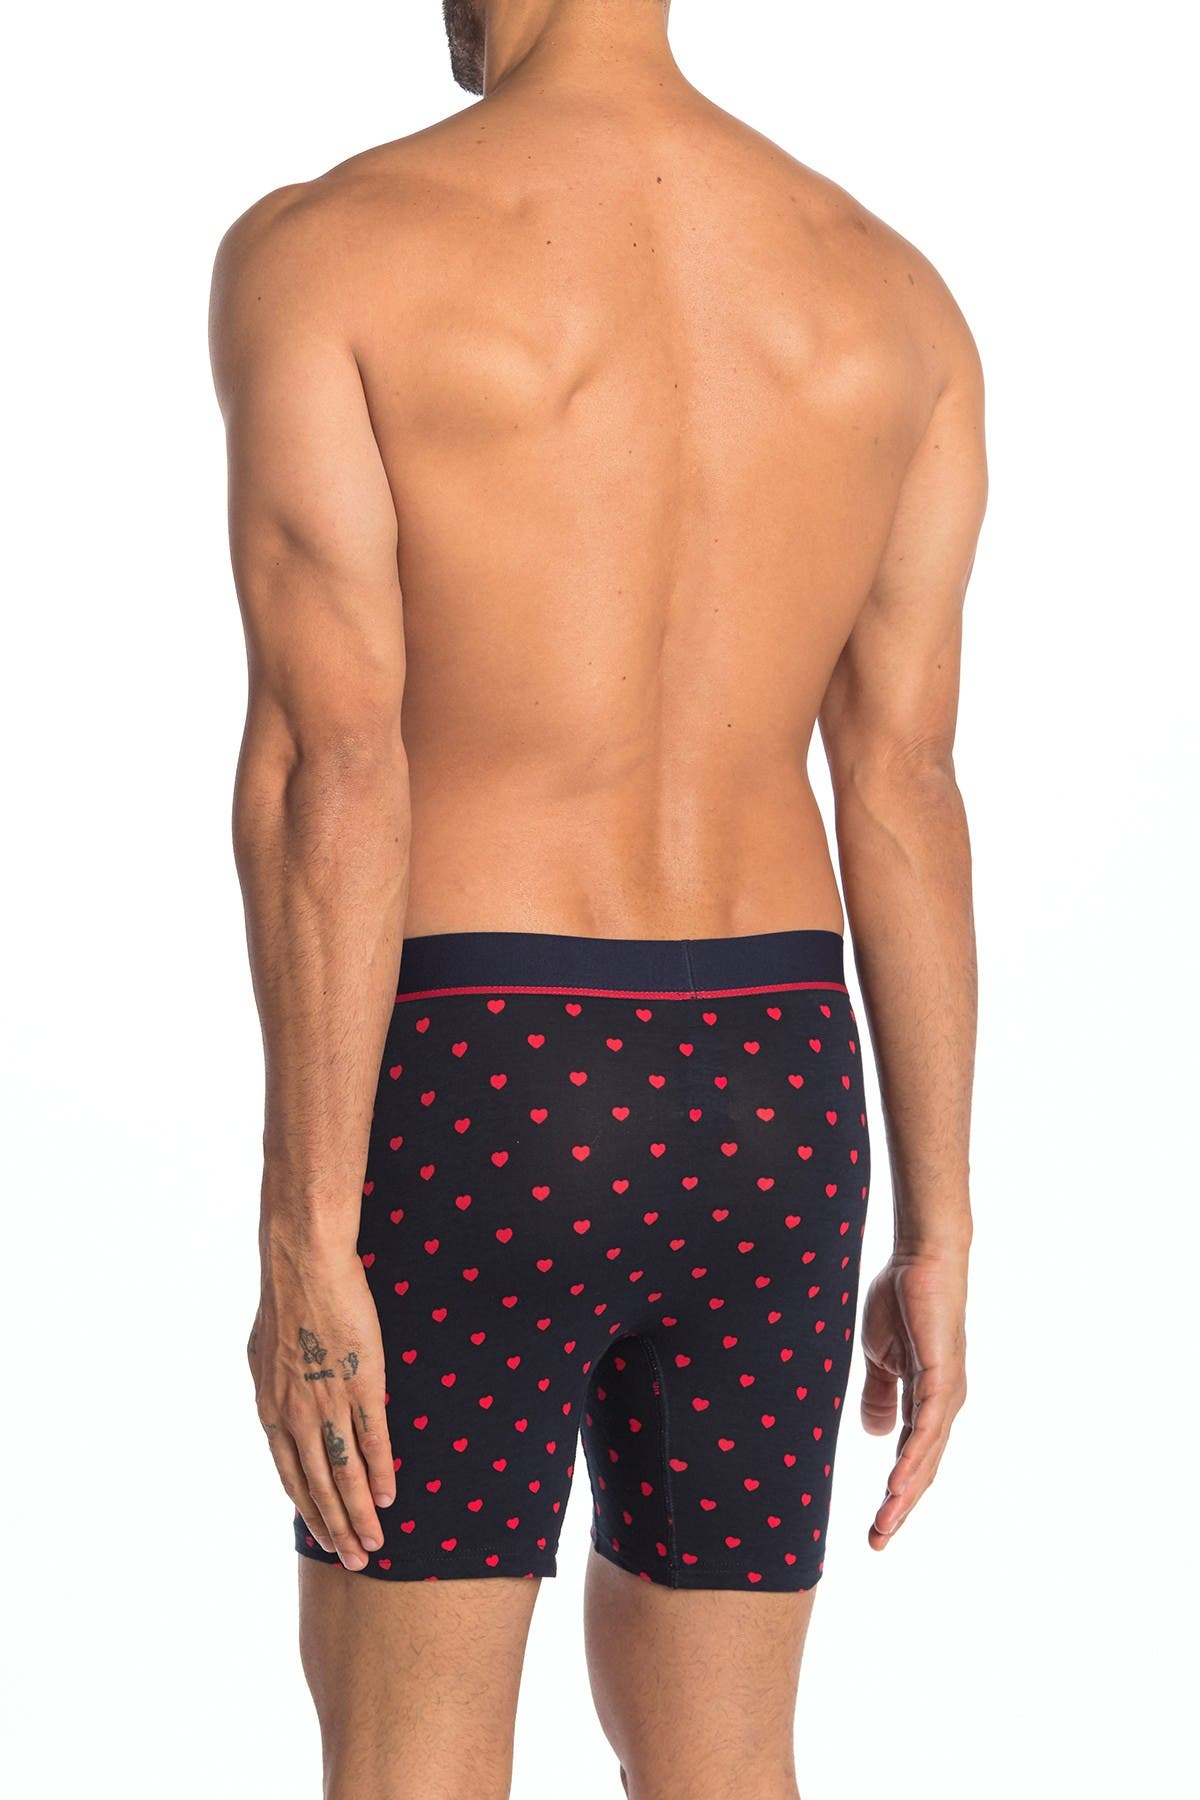 Image of Unsimply Stitched Heart Print Stretch Cotton Trunks